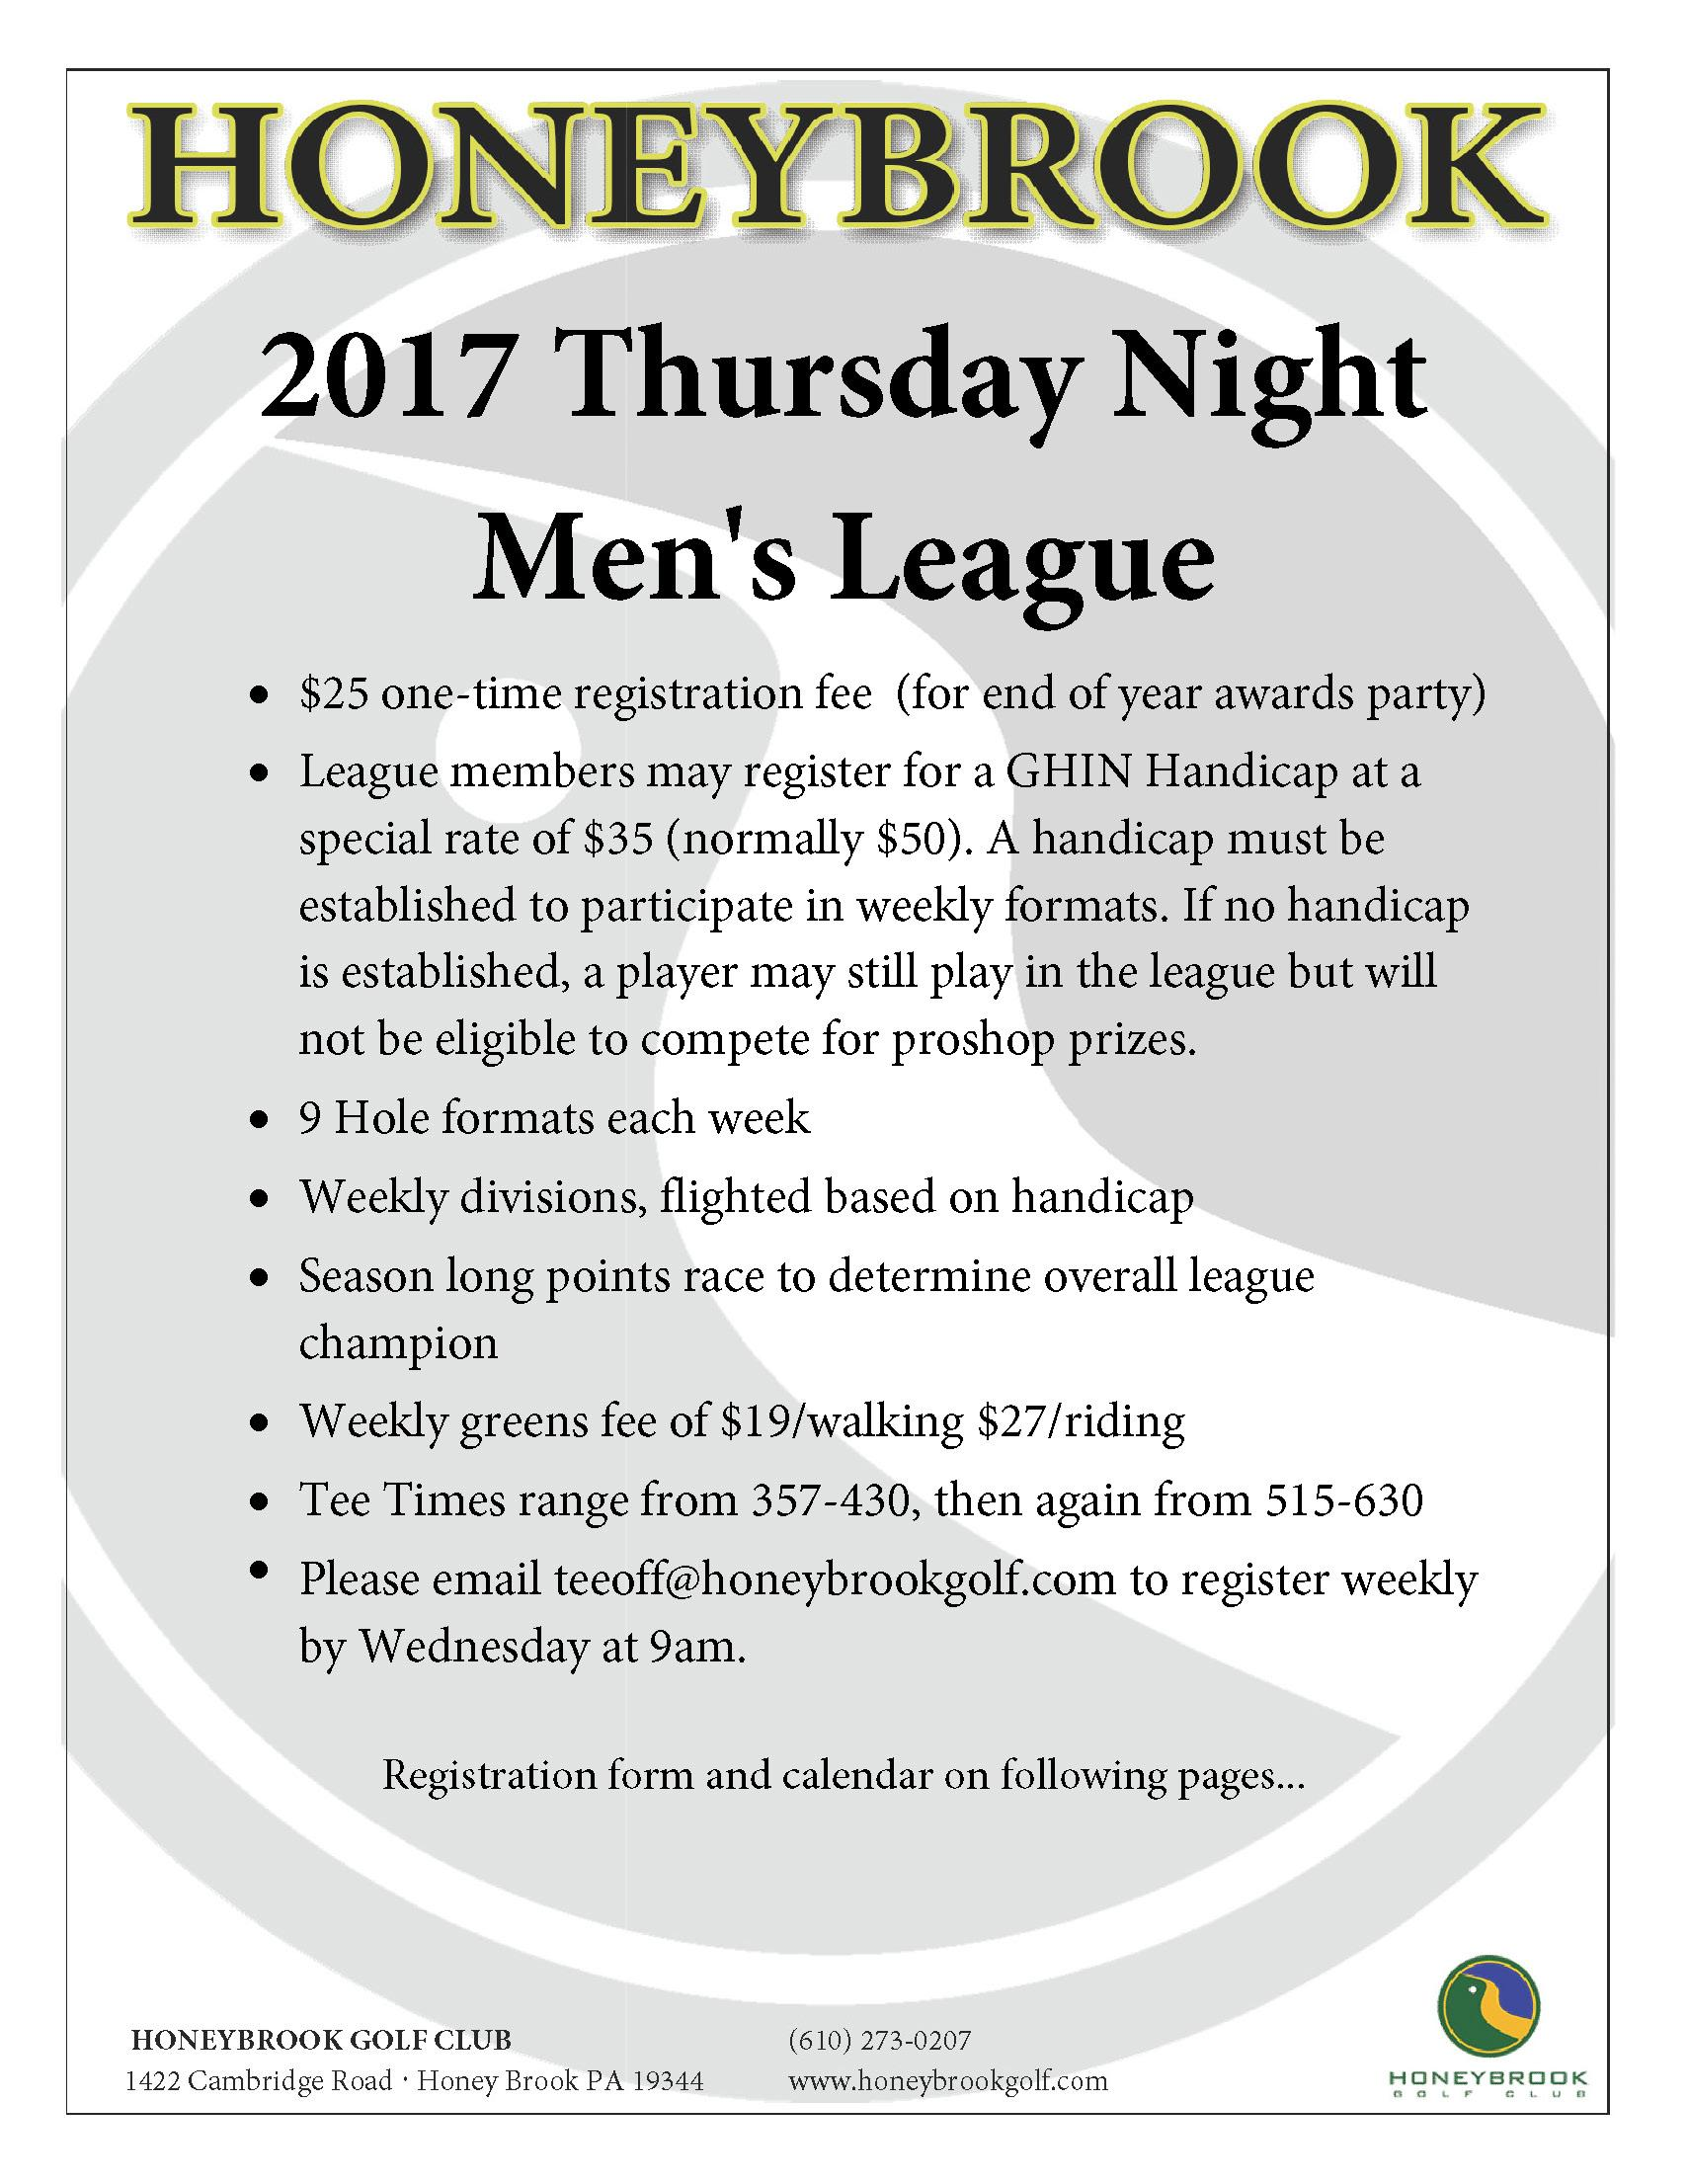 2017 Thursday Night Mens League Page 1